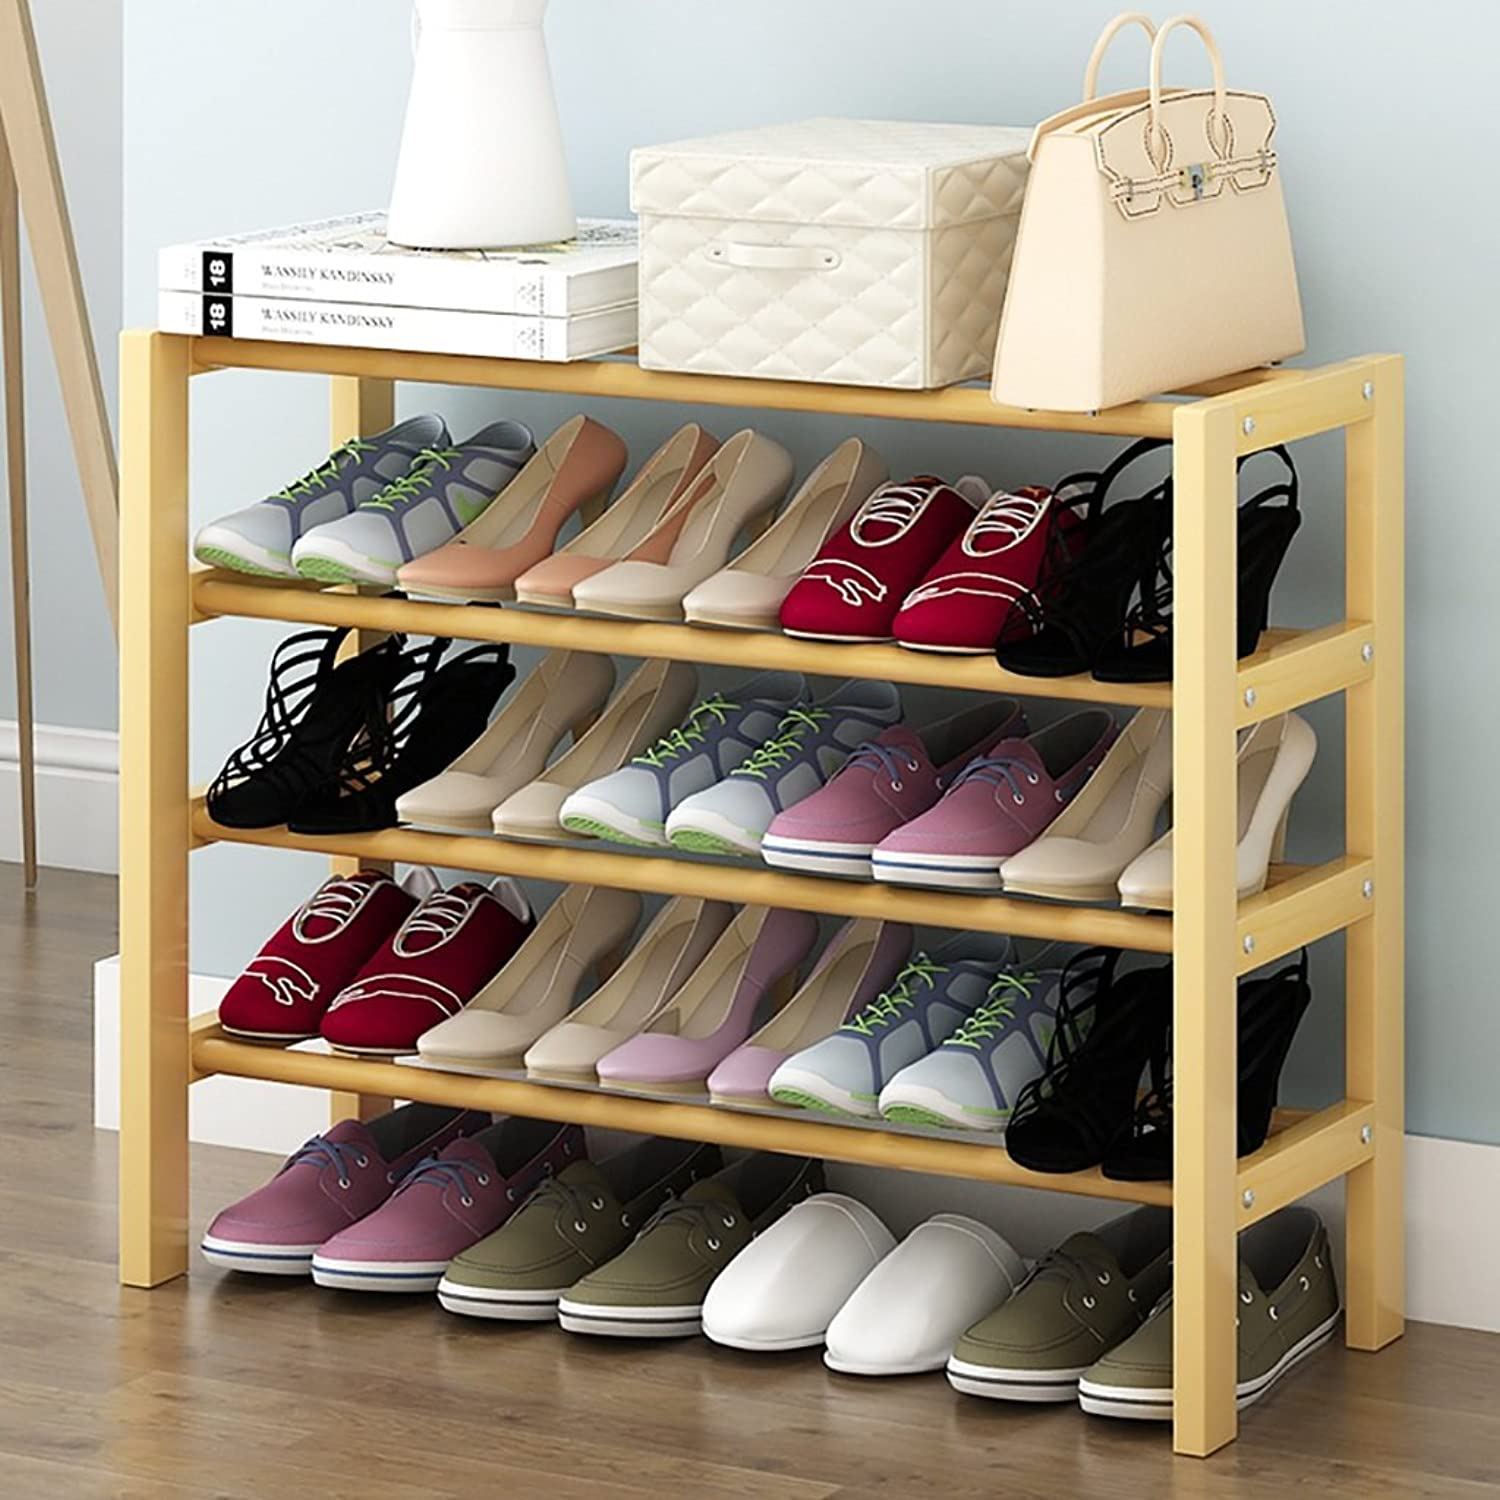 shoes Bench Organizing Rack Solid Wood shoes Rack Household Simple Small shoes Rack Multi-Functional dust shoes Rack shoes Storage Rack (Size   50cm)